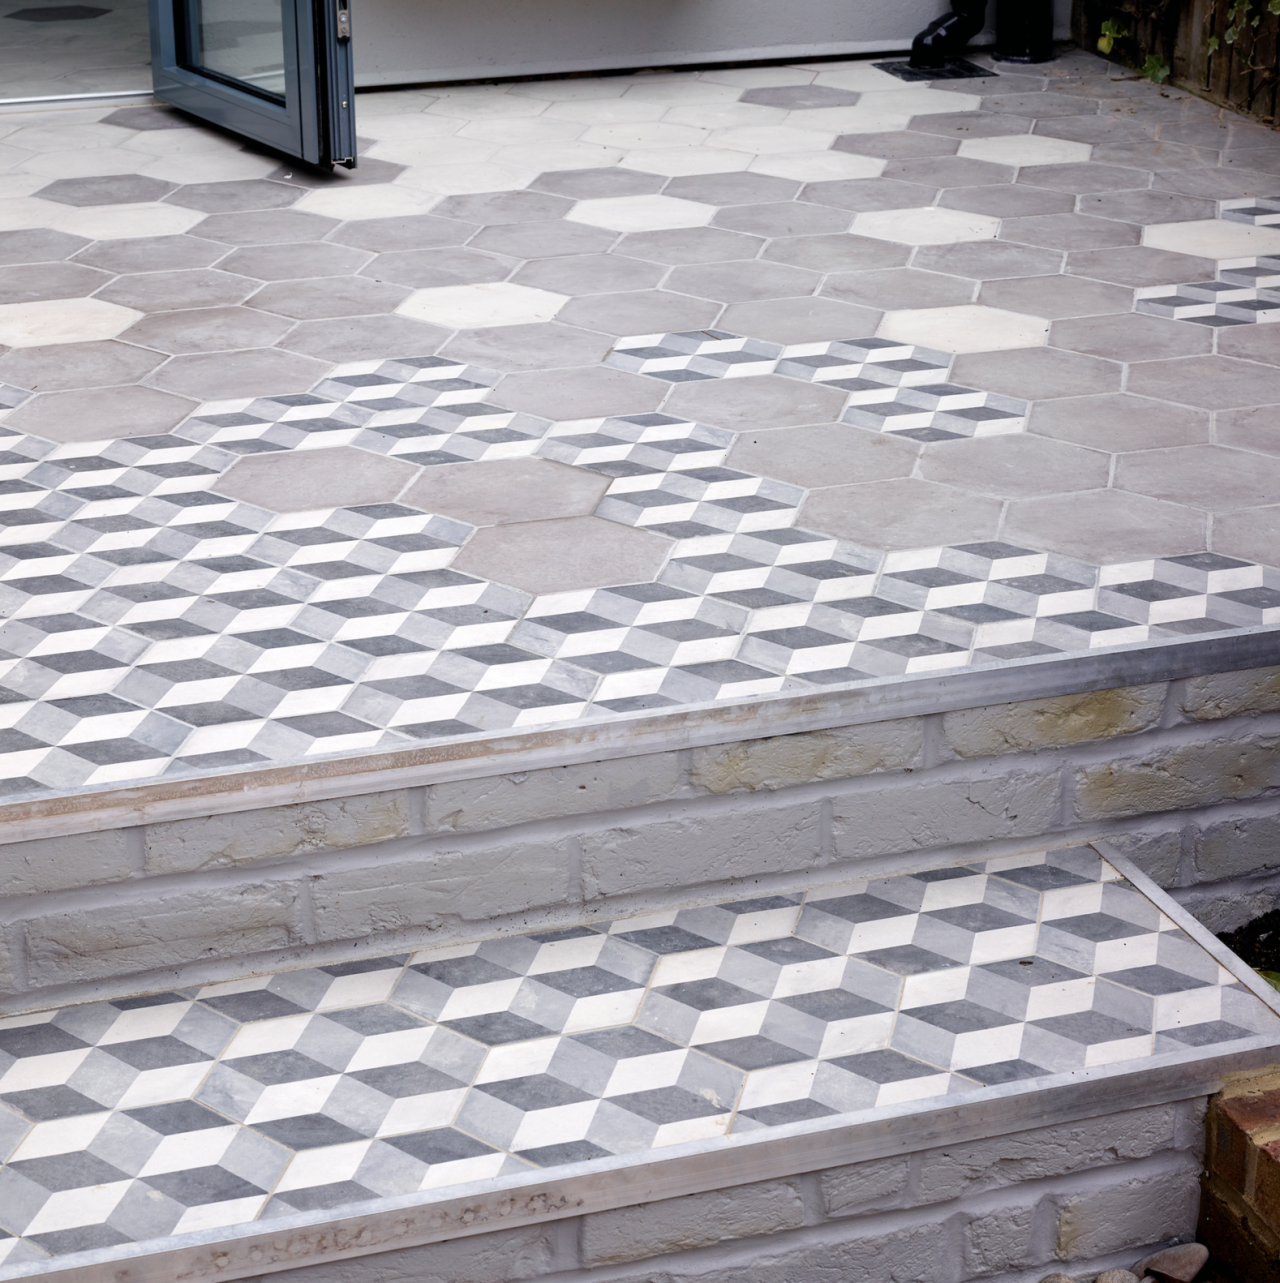 Are You Thinking Of Giving Your Outdoors A Facelift Outdoor Tiles Patterned Floor Tiles Ceramic Tiles